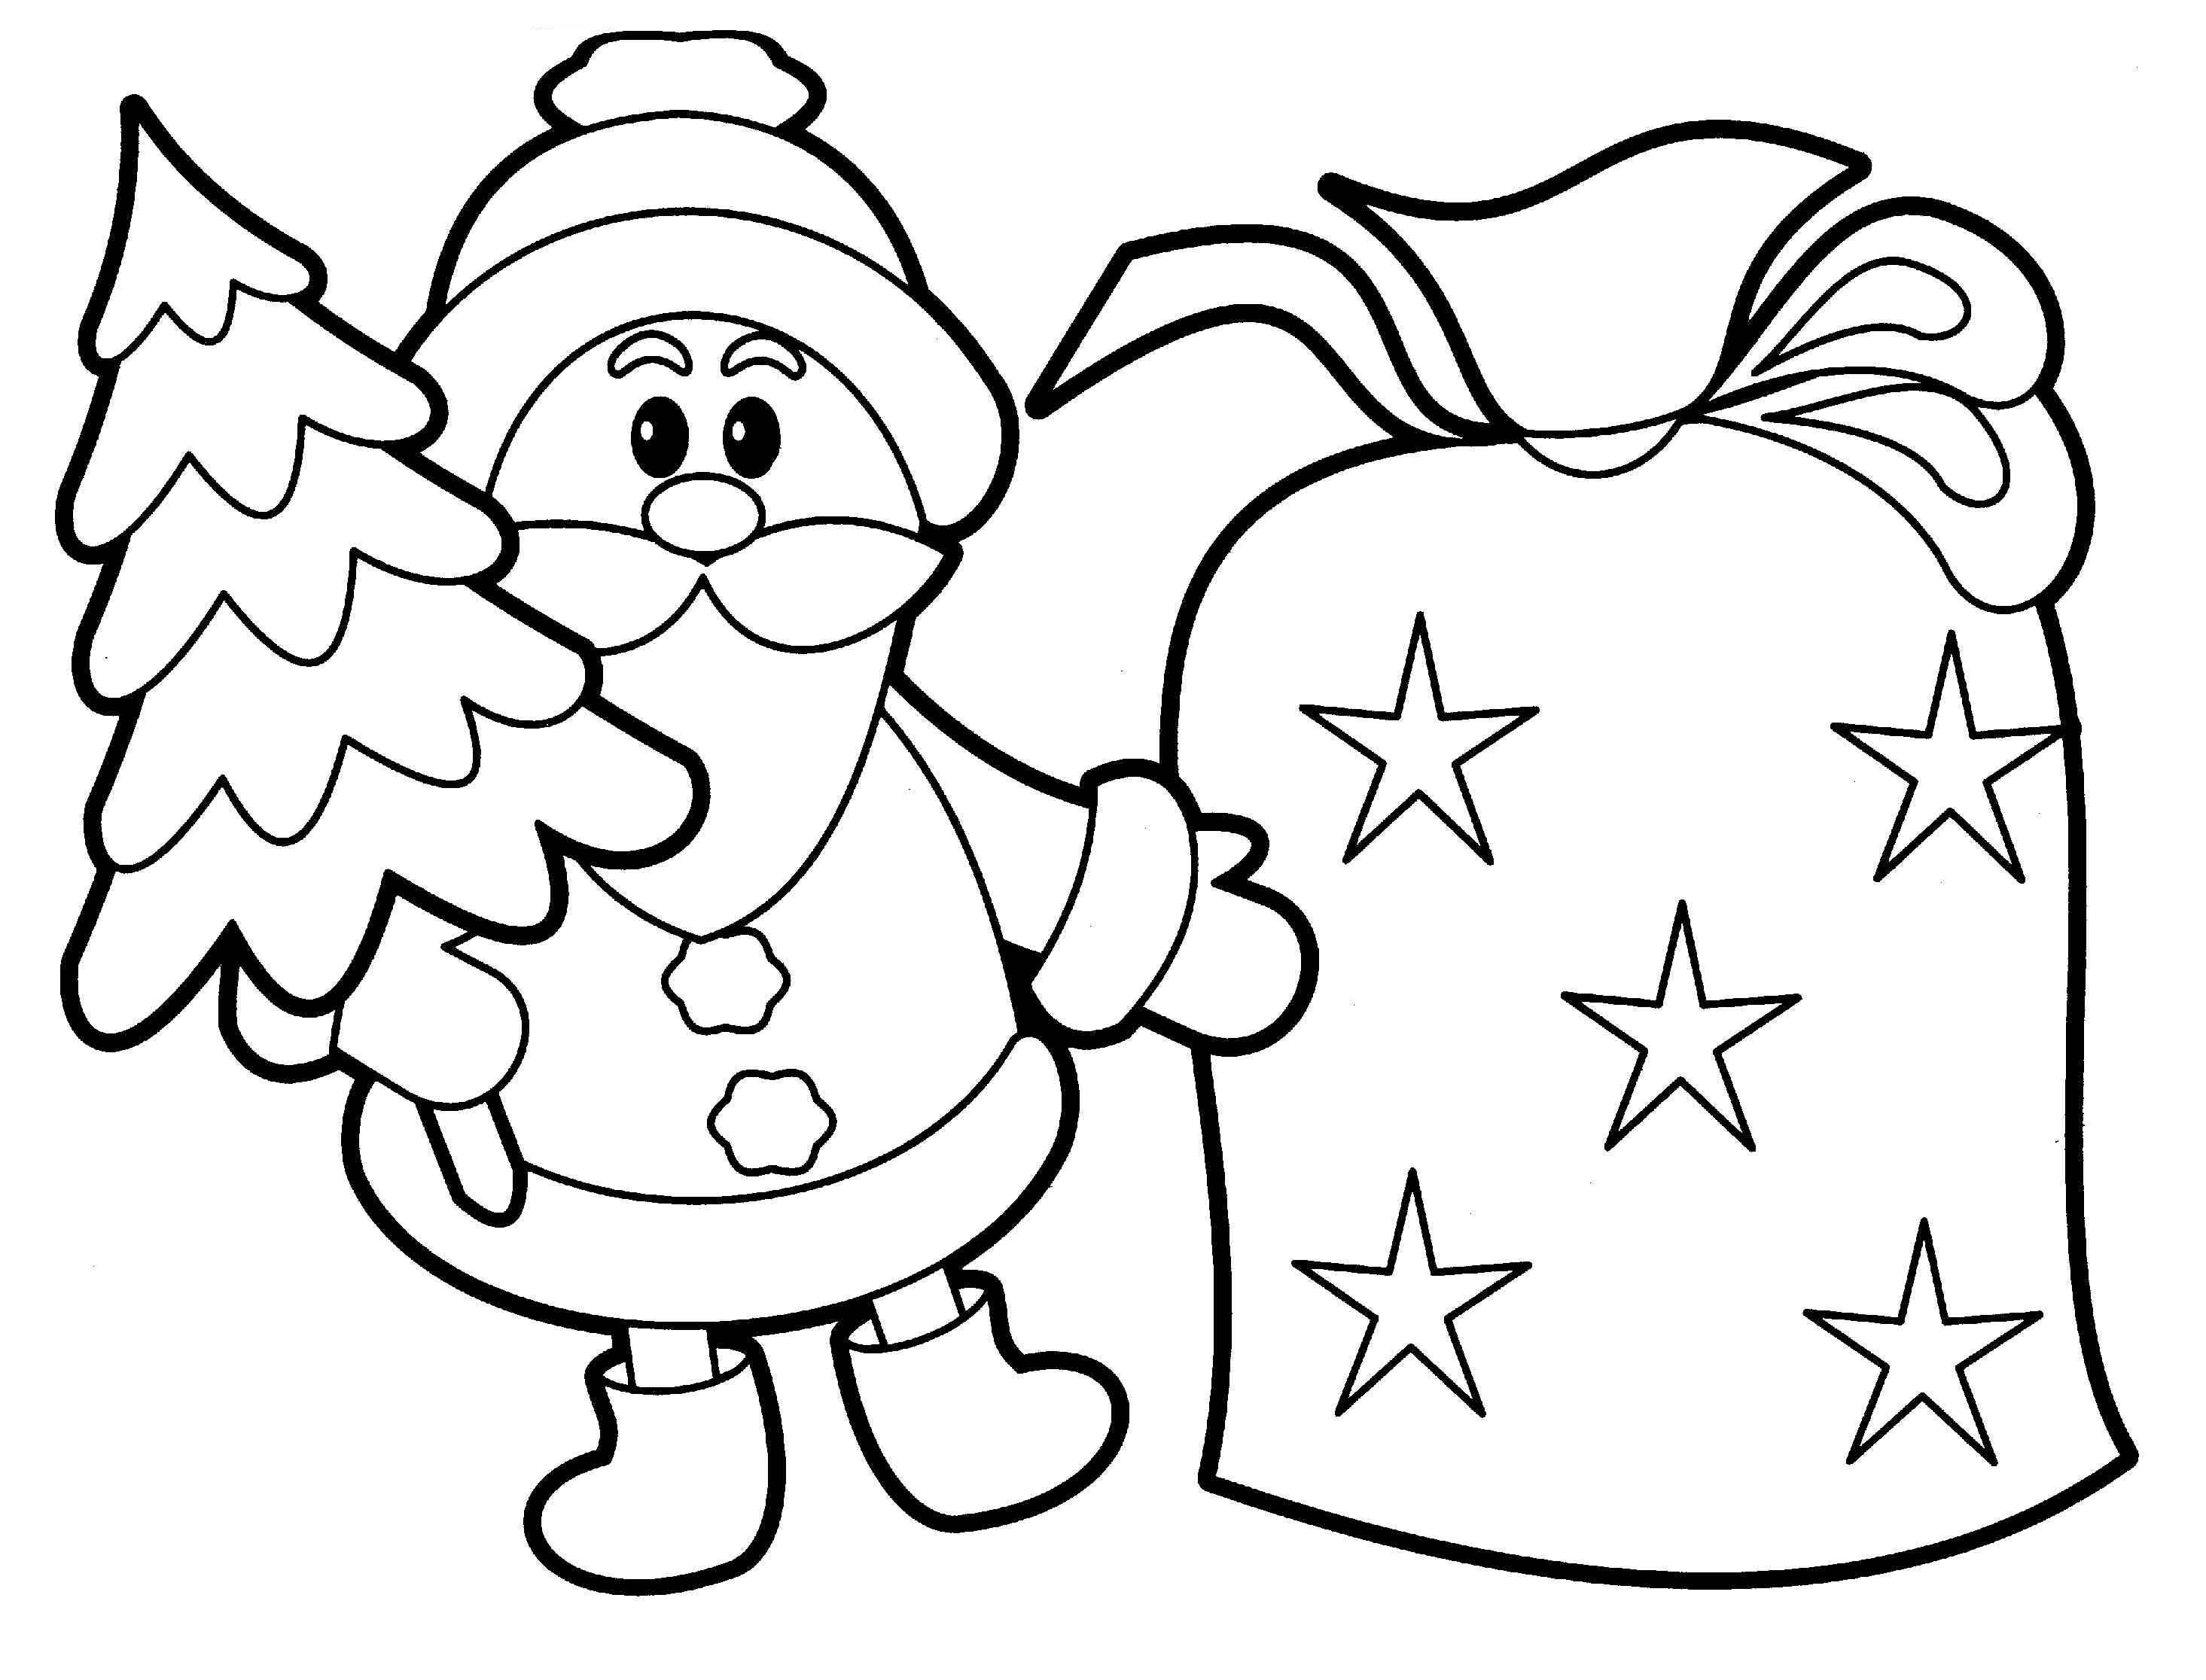 coloring pages for preschool free printable kindergarten coloring pages for kids pages coloring preschool for